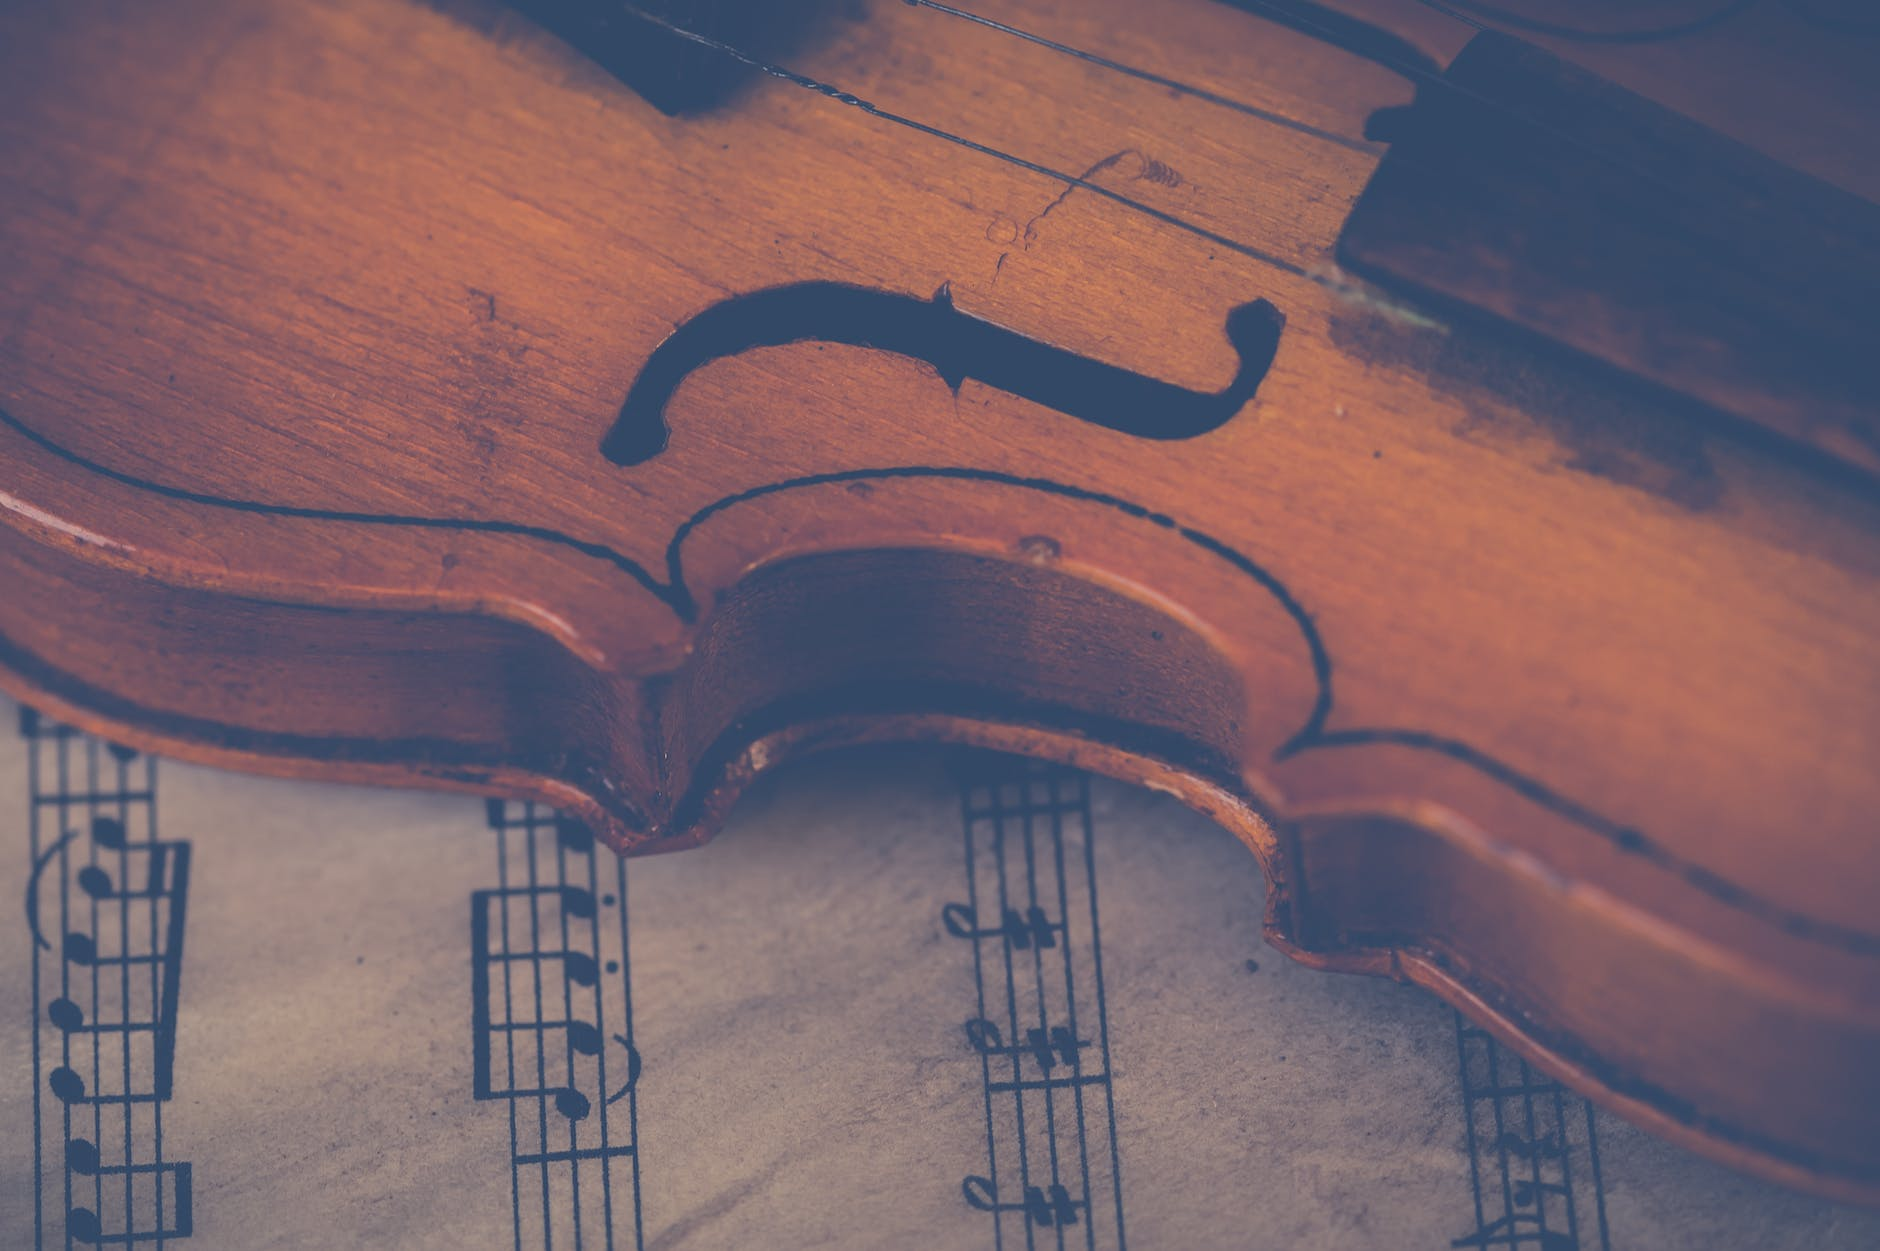 A violin. Individuals can begin expressing creativity by playing music